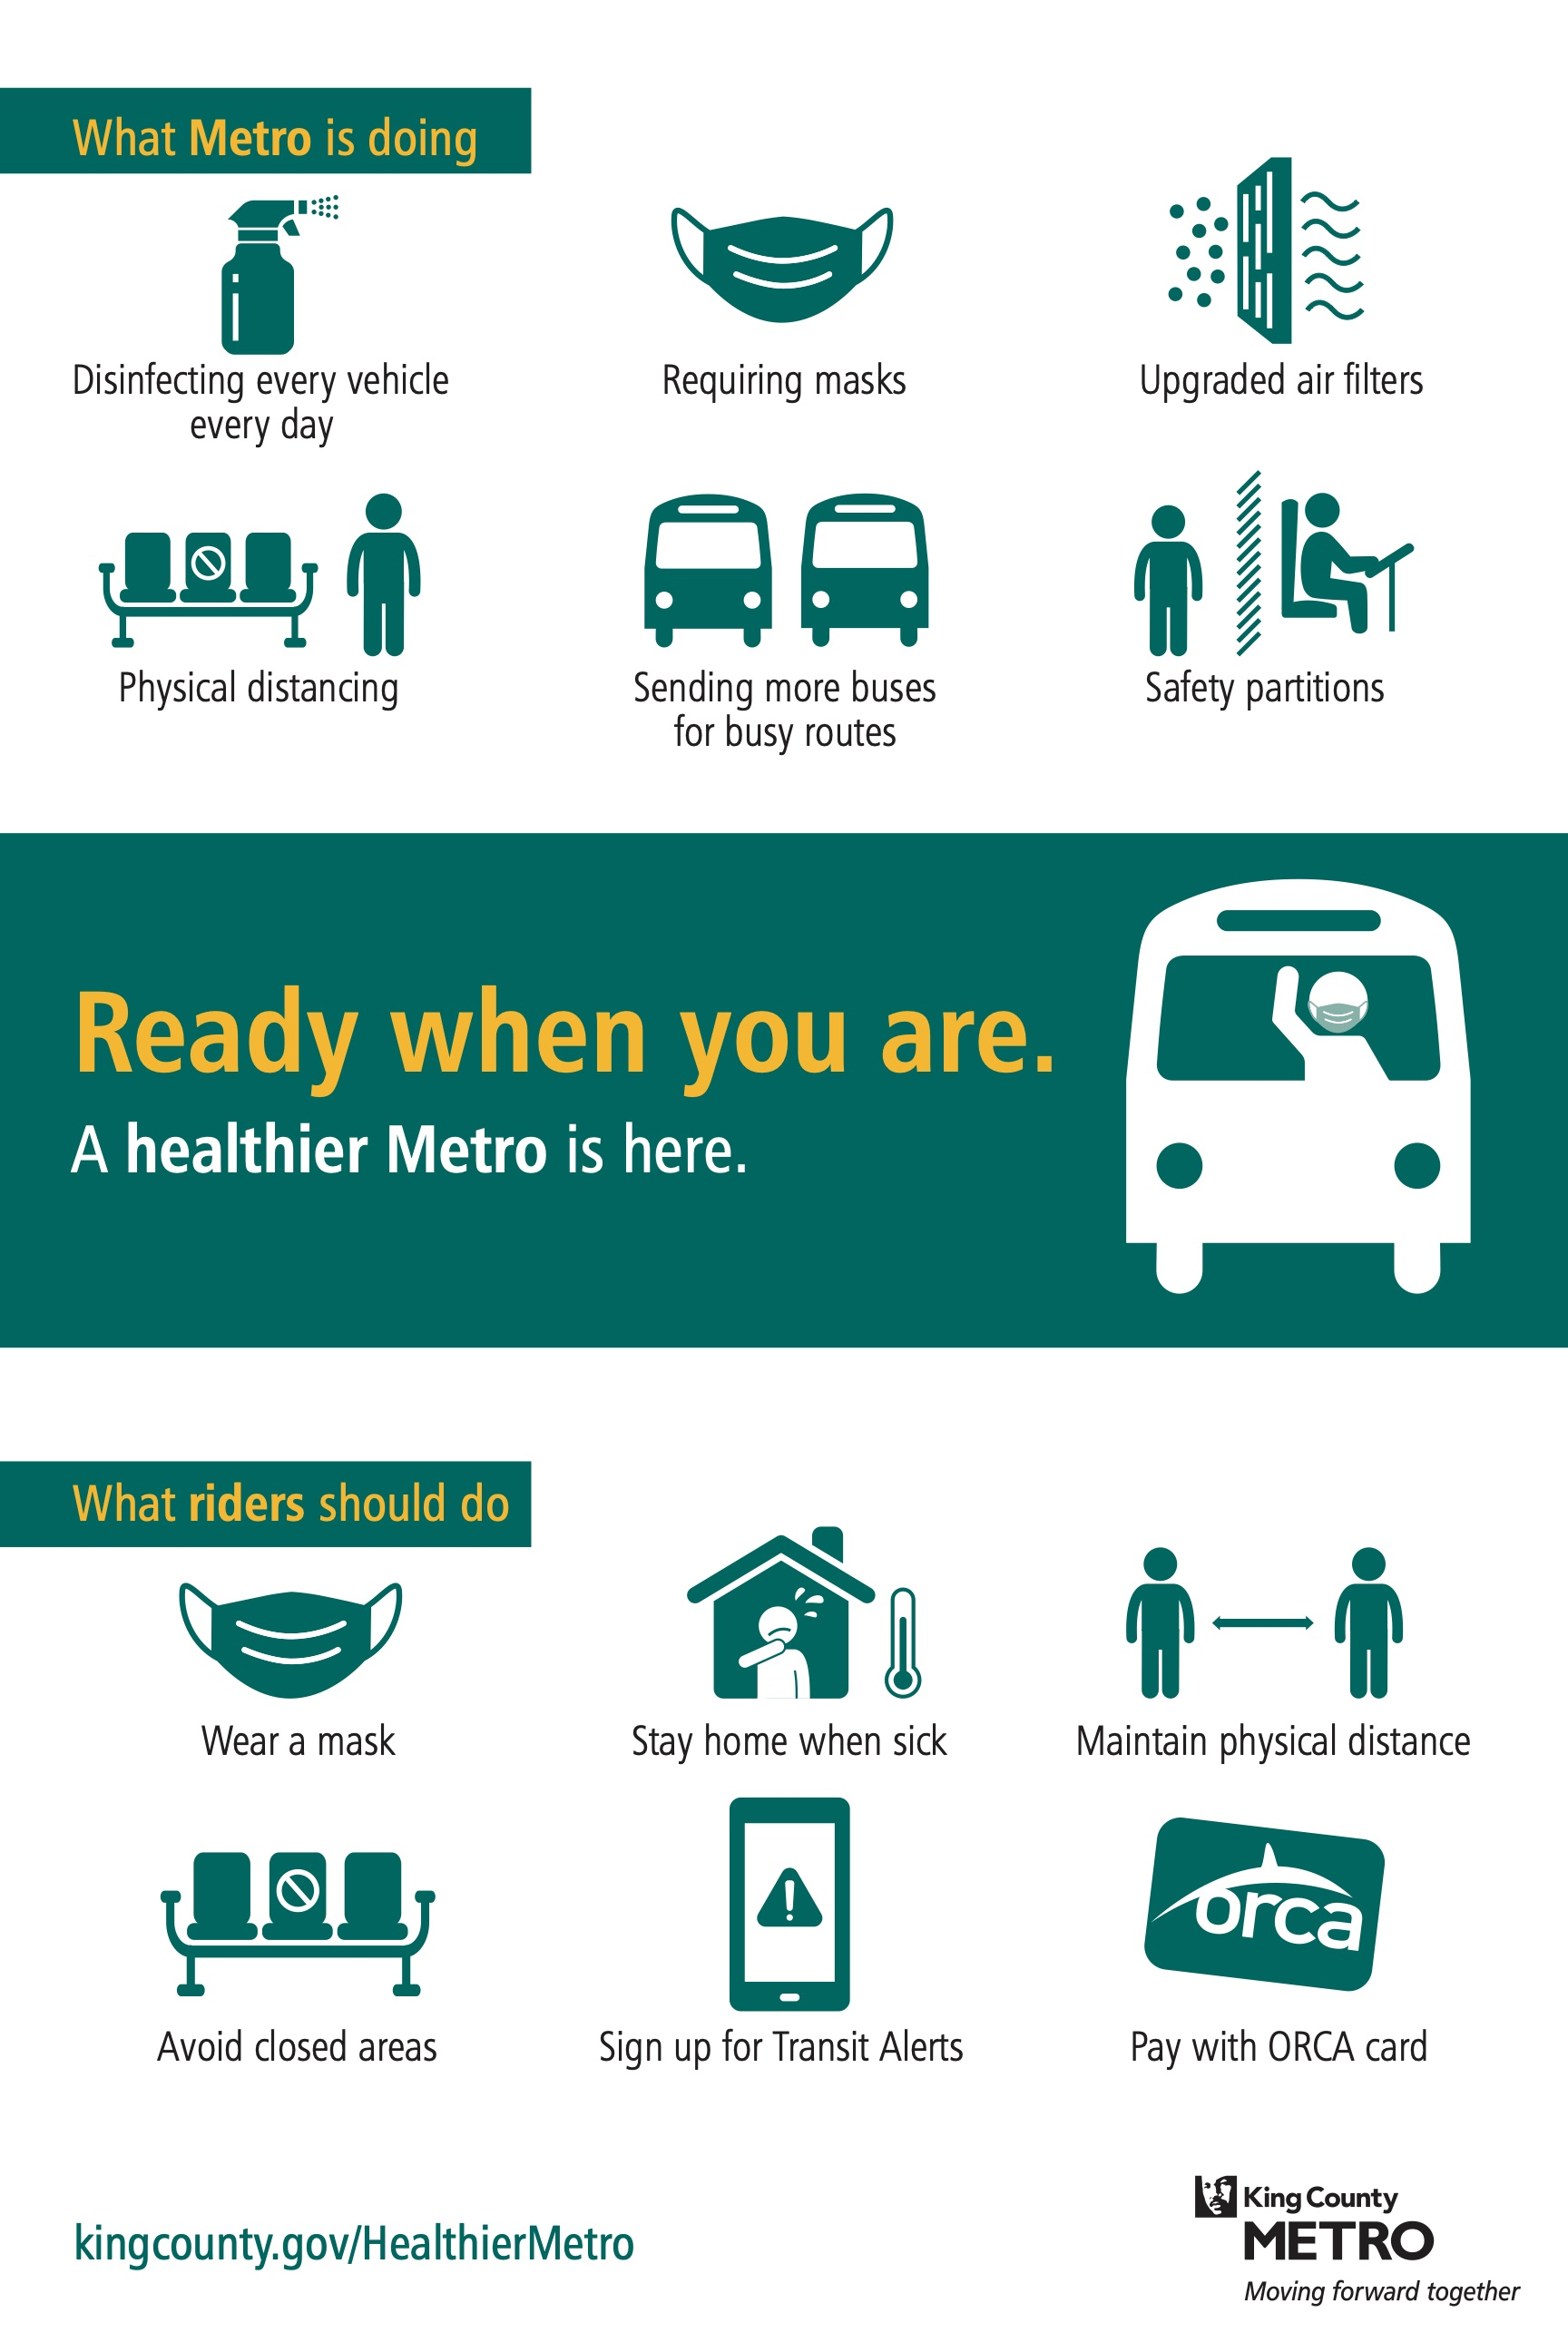 A graphic explaining how Metro is responding to COVID-19